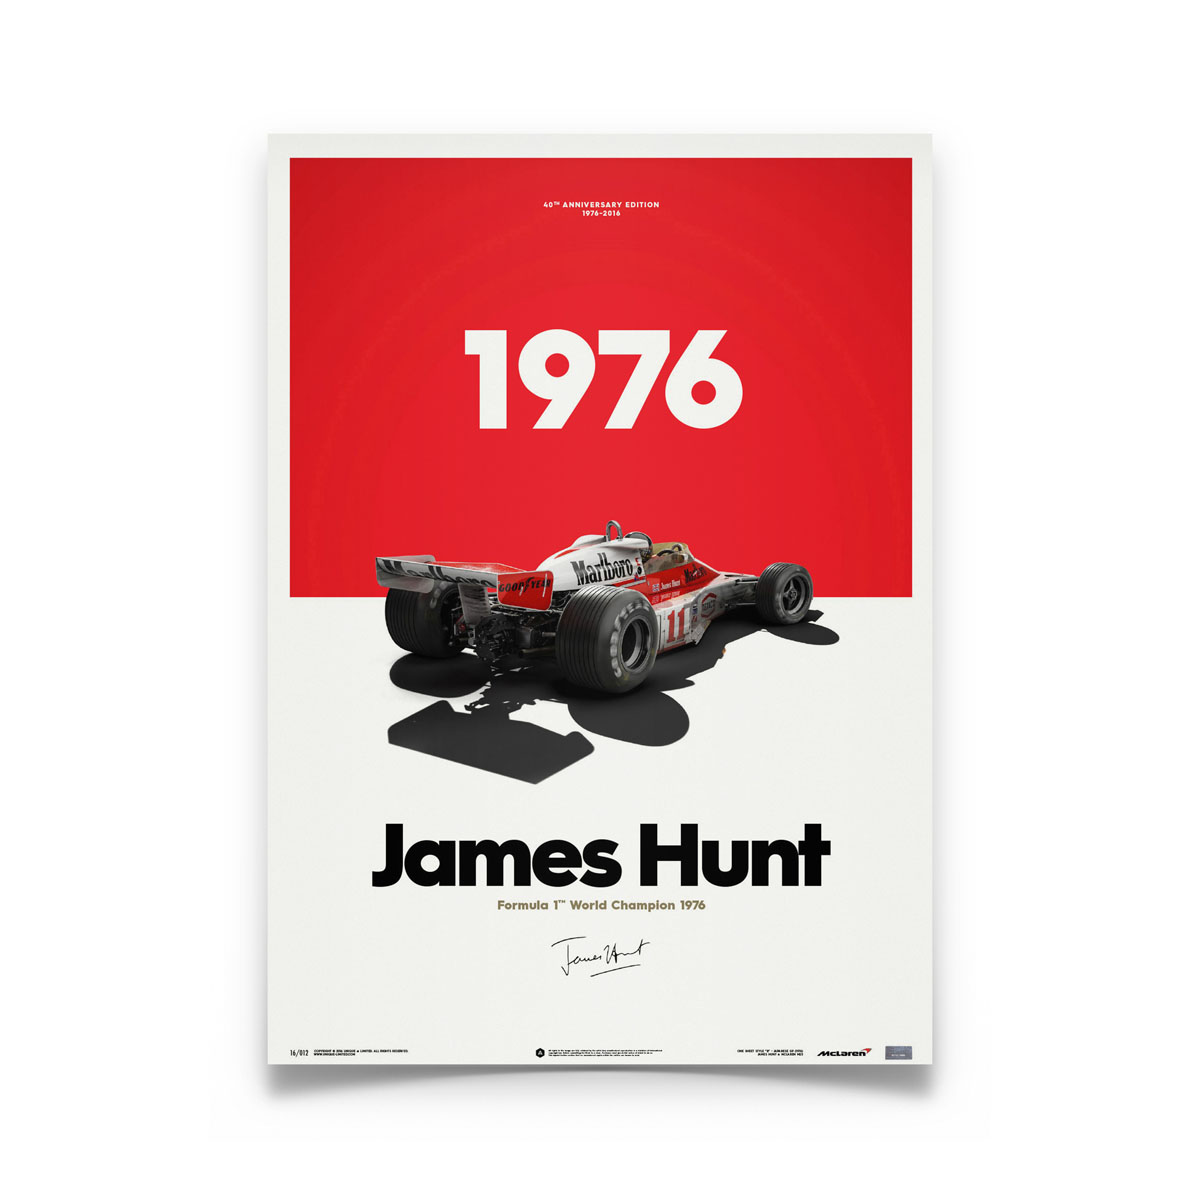 Product image for McLaren M23 James Hunt Marlboro Japanese GP 1976: Limited Poster